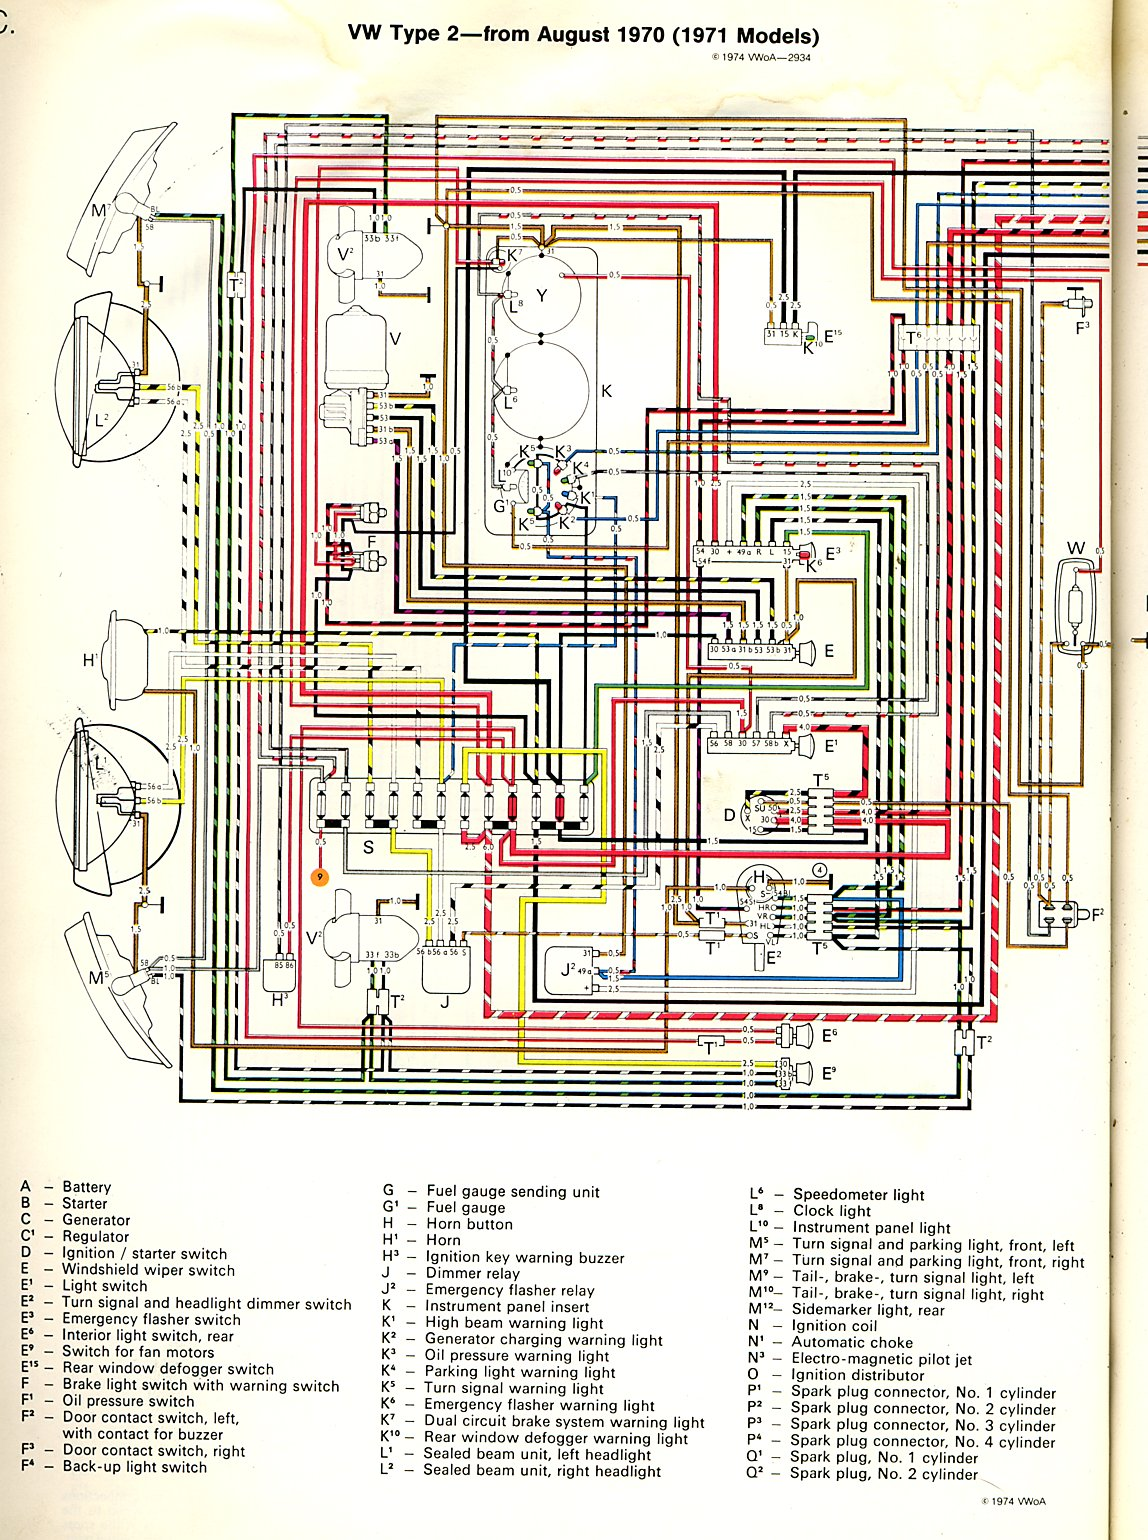 baybus_71a thesamba com type 2 wiring diagrams 1973 vw wiring diagram at nearapp.co